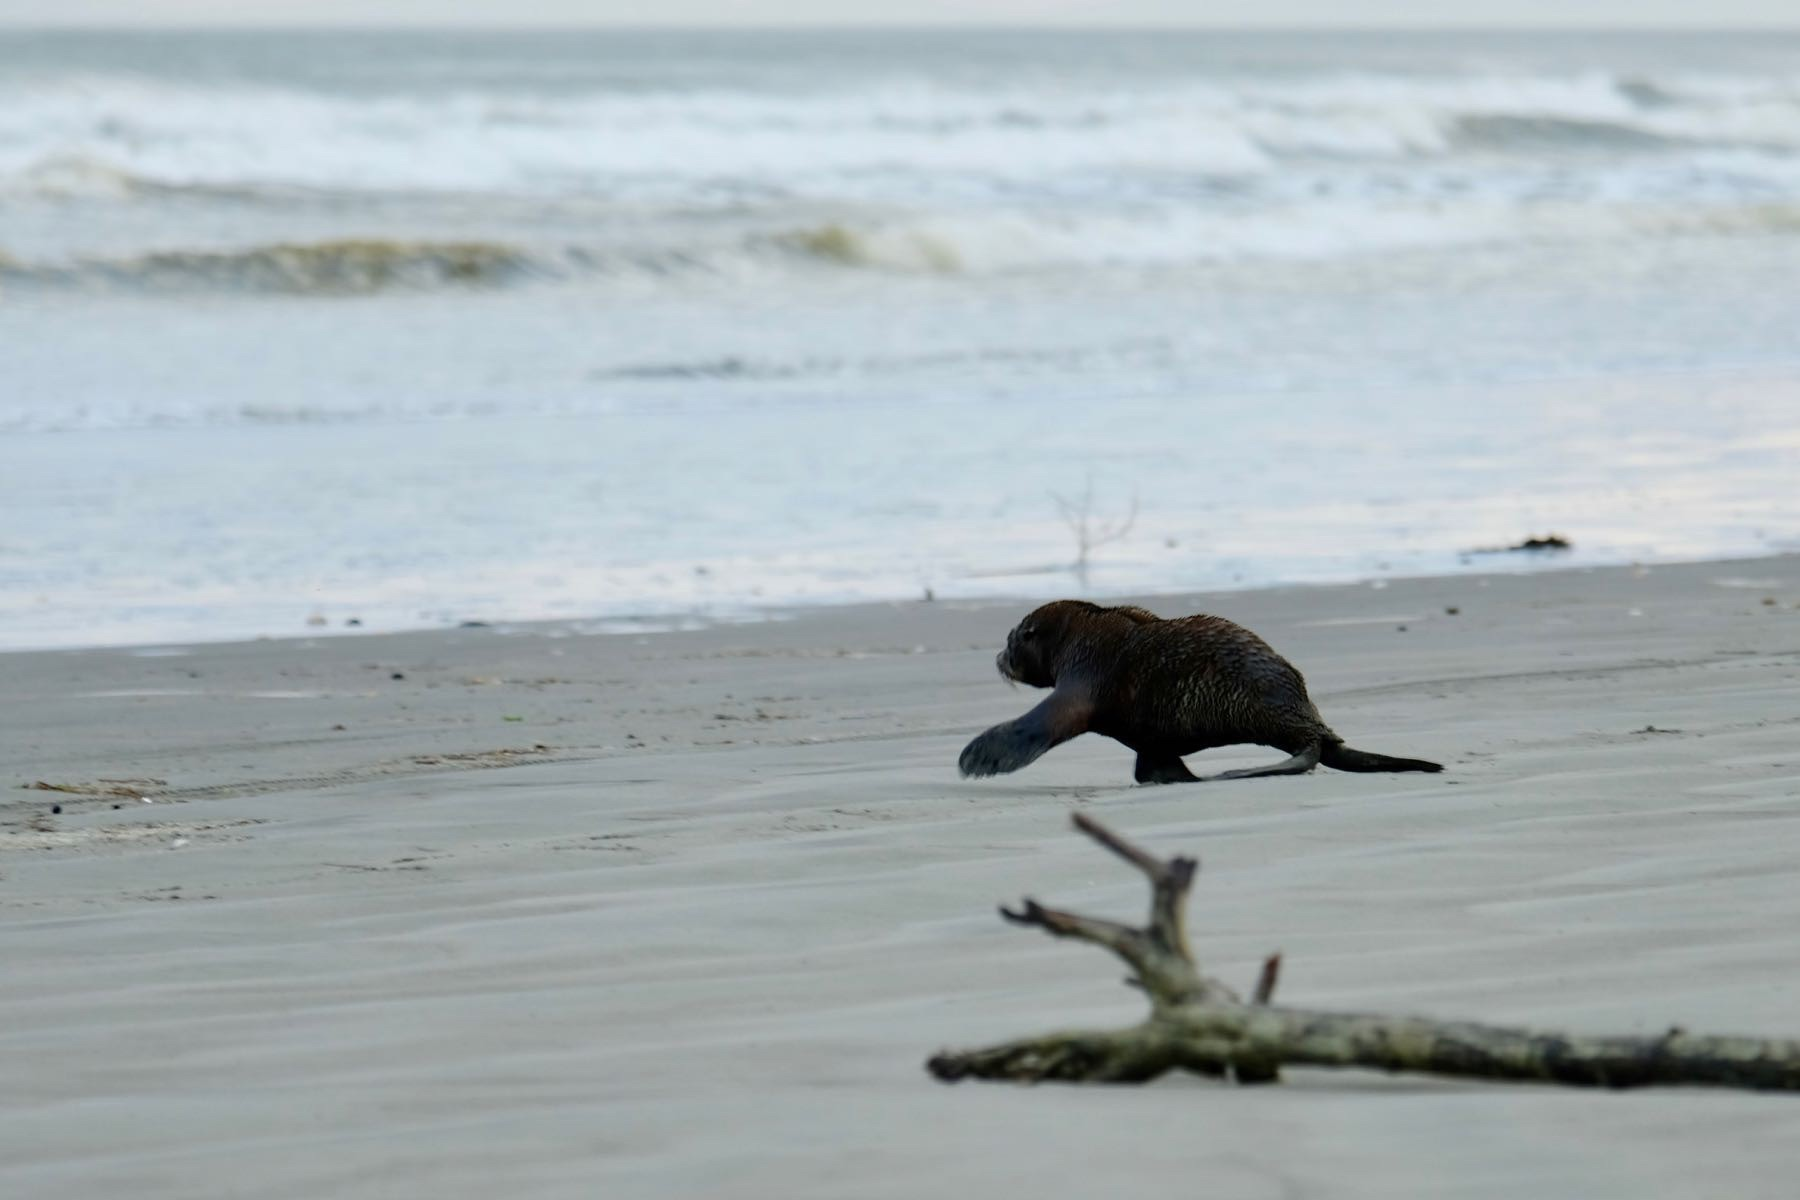 Seal pup loping across the beach.